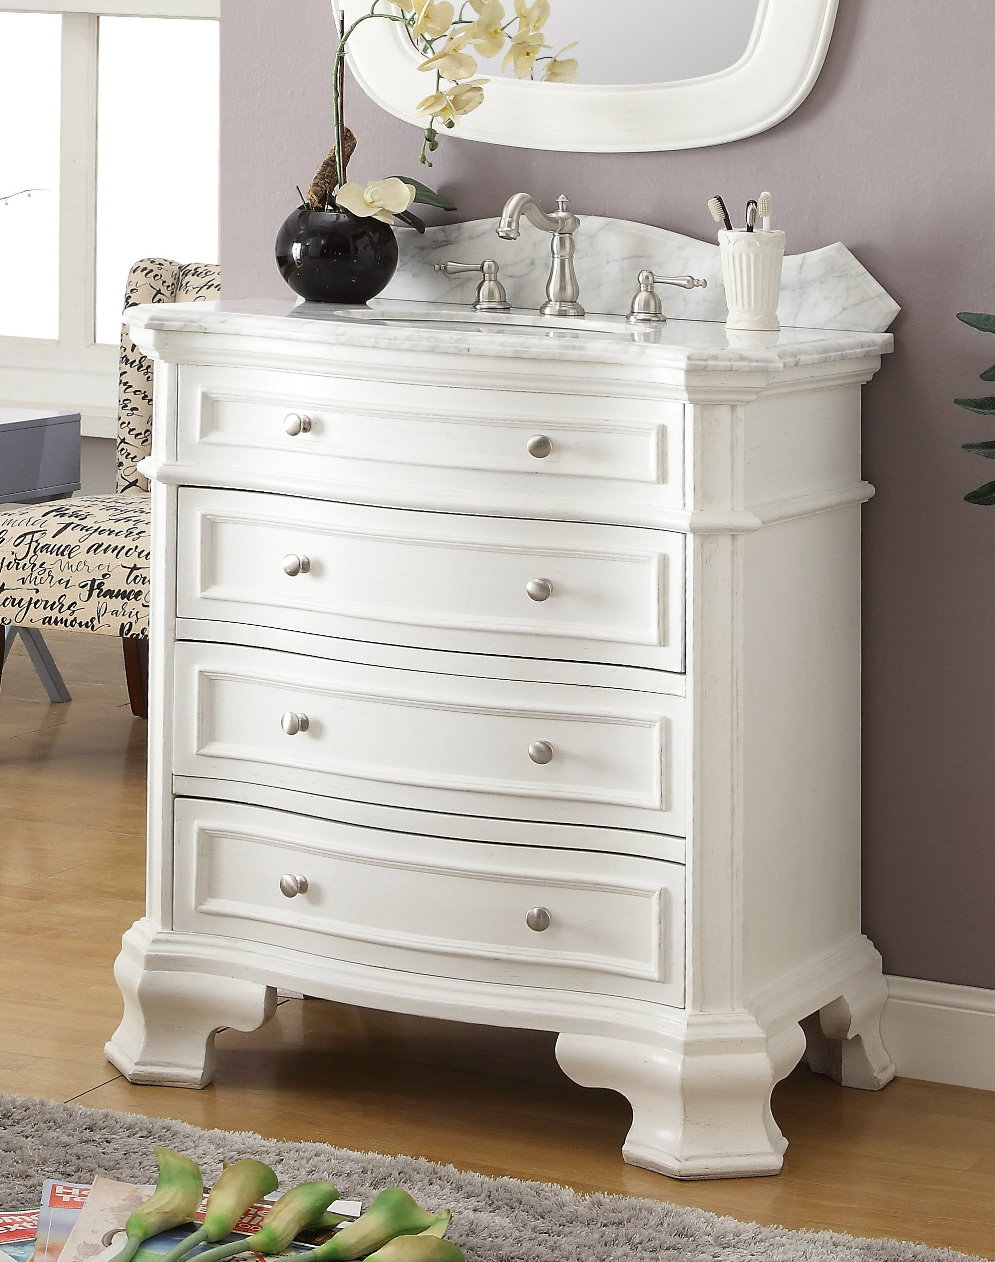 32 inch bathroom vanity 3 drawers costal cottage beach style white rh bathroomvanities4less com 32 inch bathroom vanity set 32 inch bathroom vanity without top